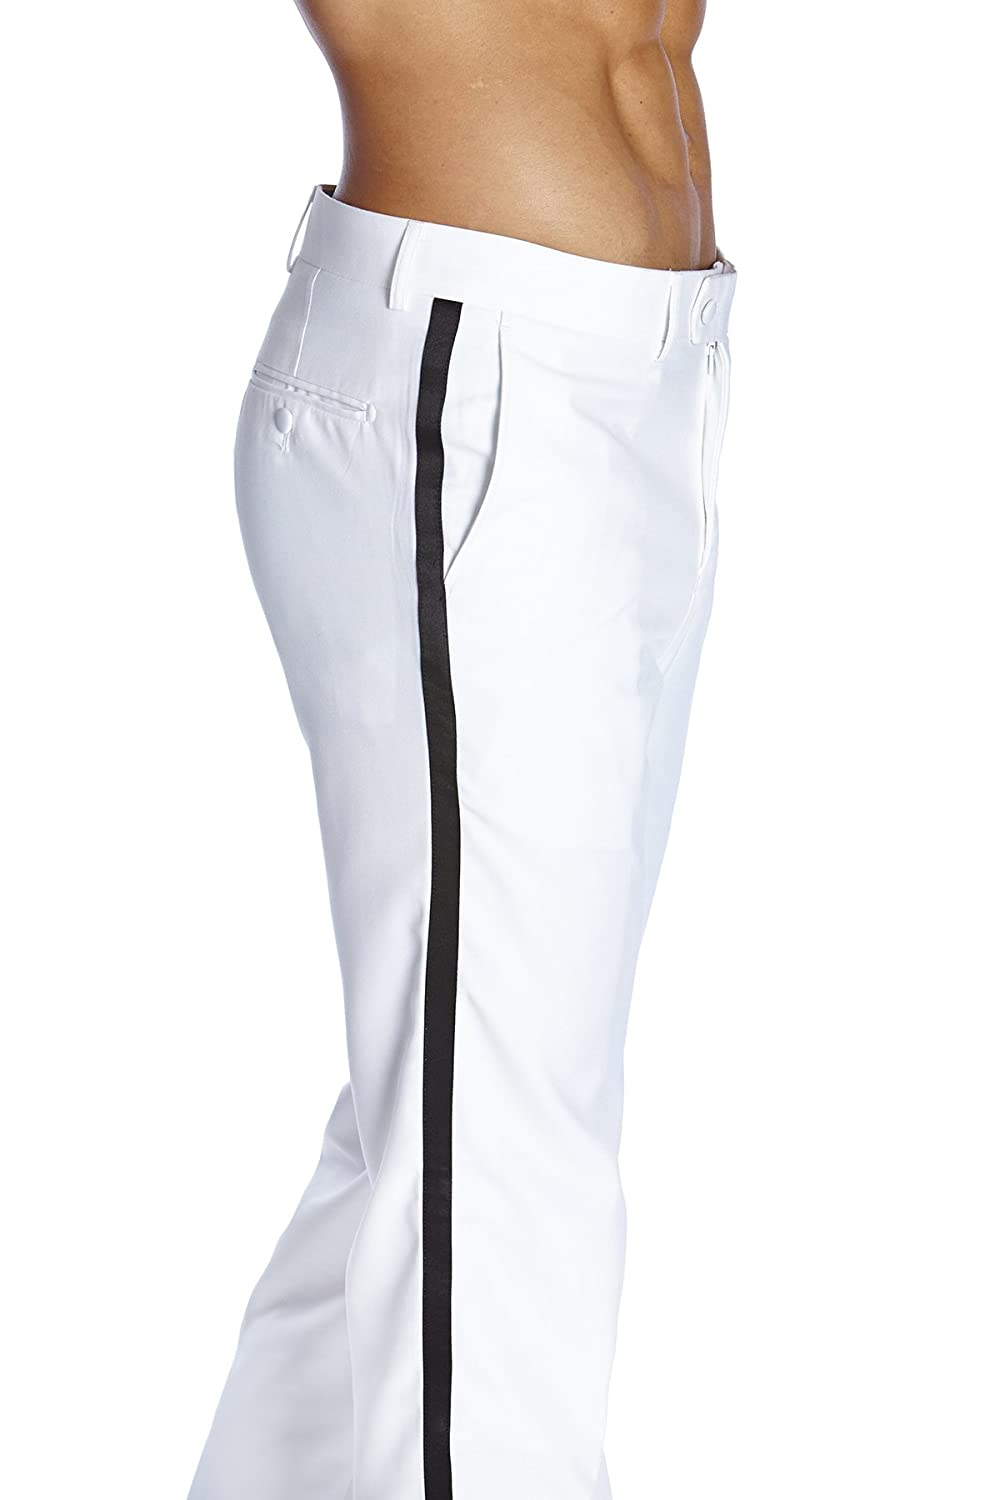 CONCITOR Men's TUXEDO Pants Flat Front with BLACK Satin Band Solid WHITE Color